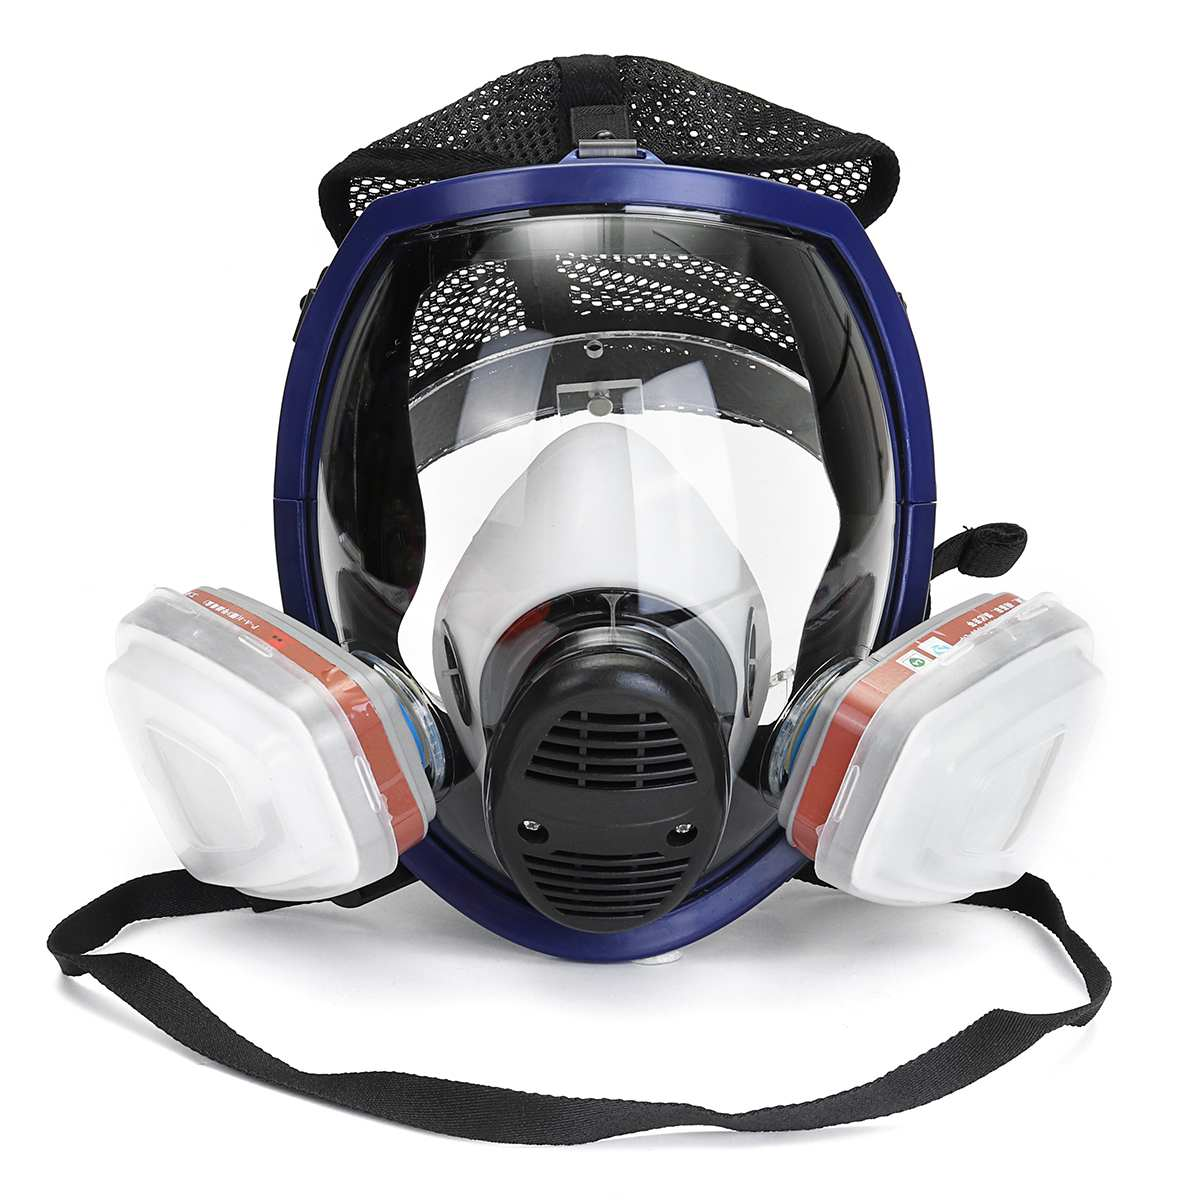 15 in 1 Large Size Full Face 6800 Gas Mask Facepiece Respirator Painting Spraying Chemical Laboratory Medical Safety Mask15 in 1 Large Size Full Face 6800 Gas Mask Facepiece Respirator Painting Spraying Chemical Laboratory Medical Safety Mask